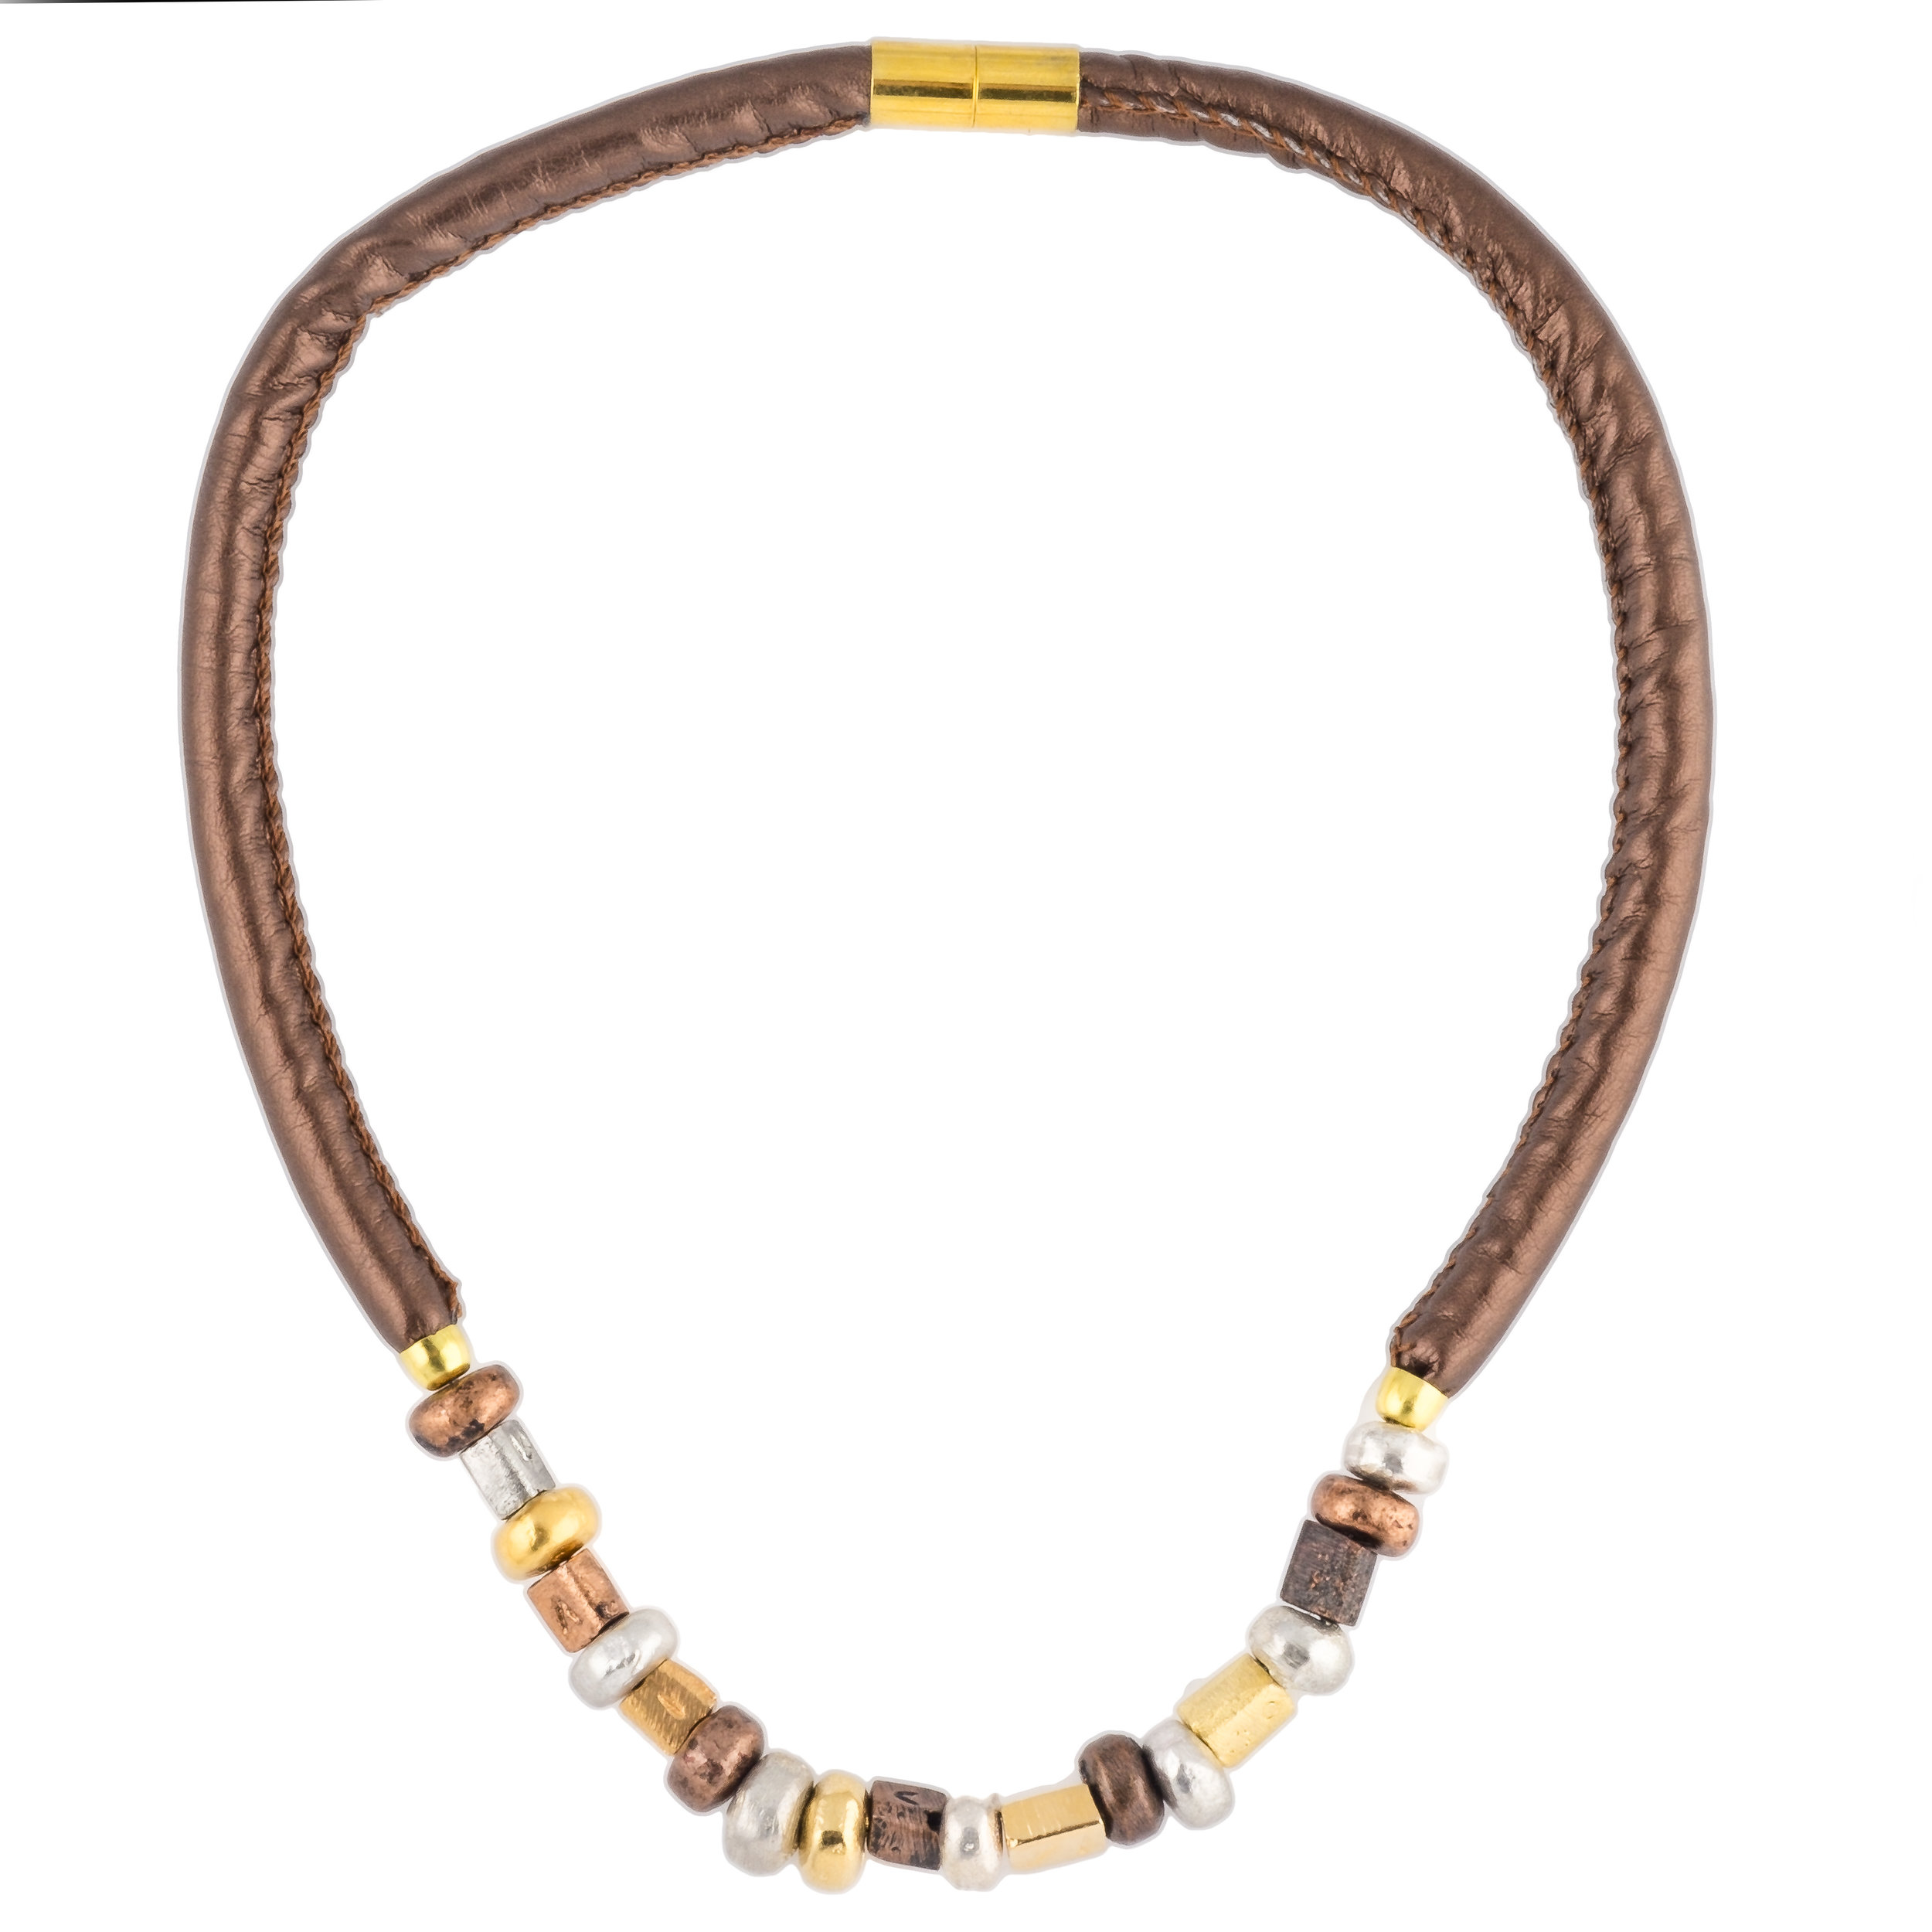 Necklace - 1 (1 of 1)-Edit.jpg